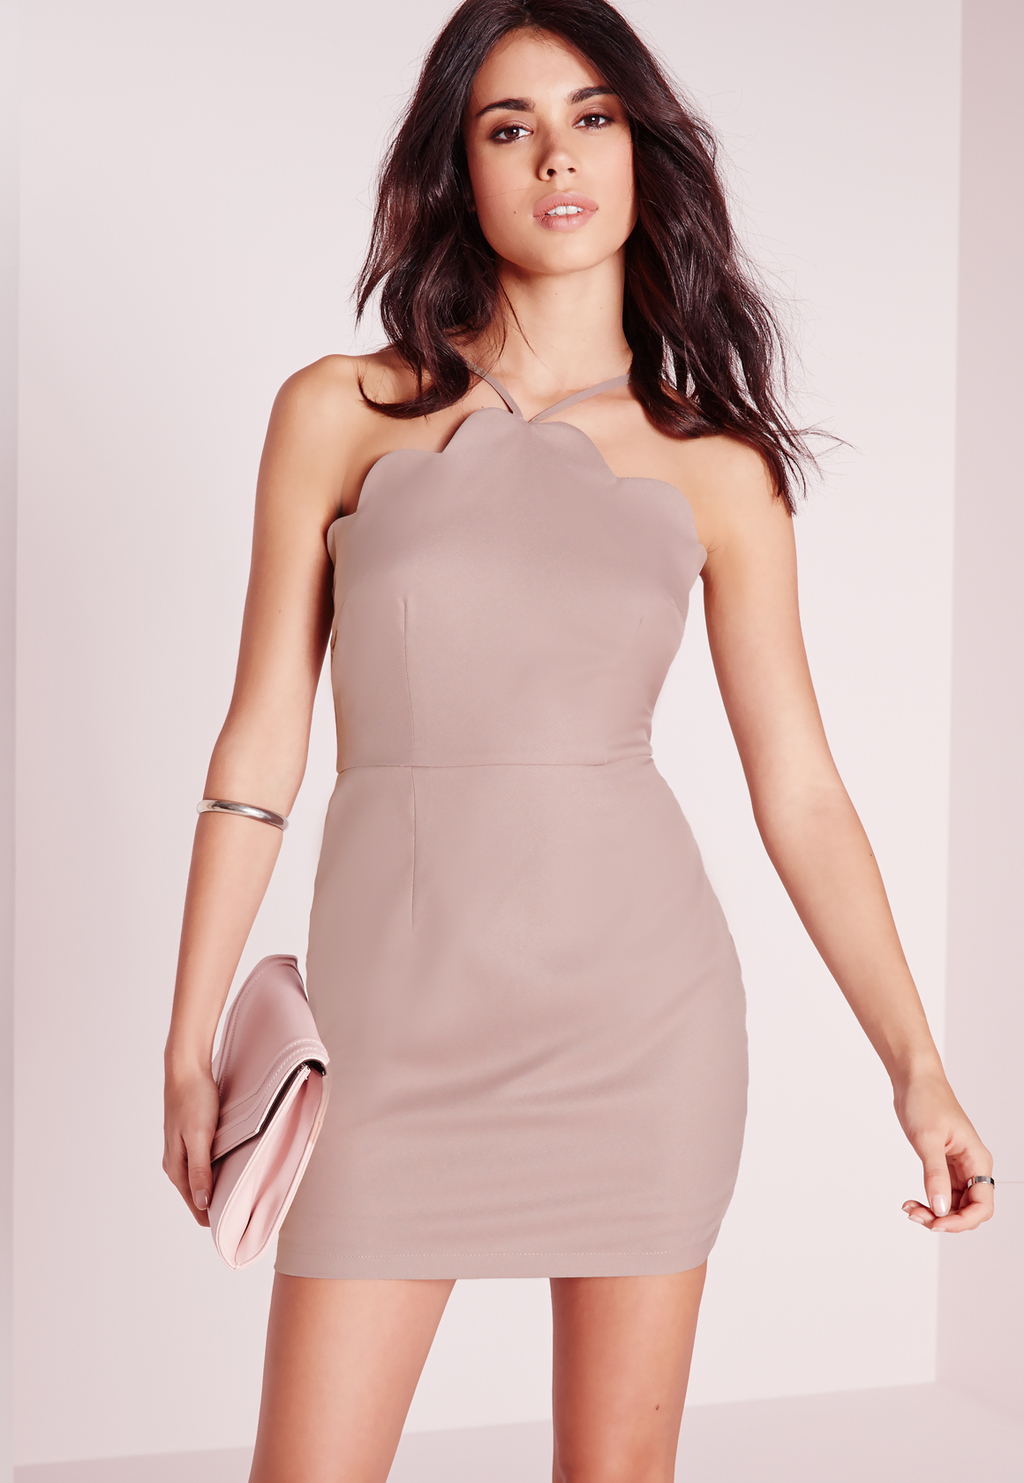 Petite Exclusive Scallop Bodycon Dress Mauve, Mauve - style: shift; length: mini; fit: tailored/fitted; pattern: plain; sleeve style: sleeveless; predominant colour: lilac; occasions: evening; fibres: polyester/polyamide - 100%; sleeve length: sleeveless; pattern type: fabric; texture group: other - light to midweight; season: s/s 2016; neckline: high halter neck; wardrobe: event